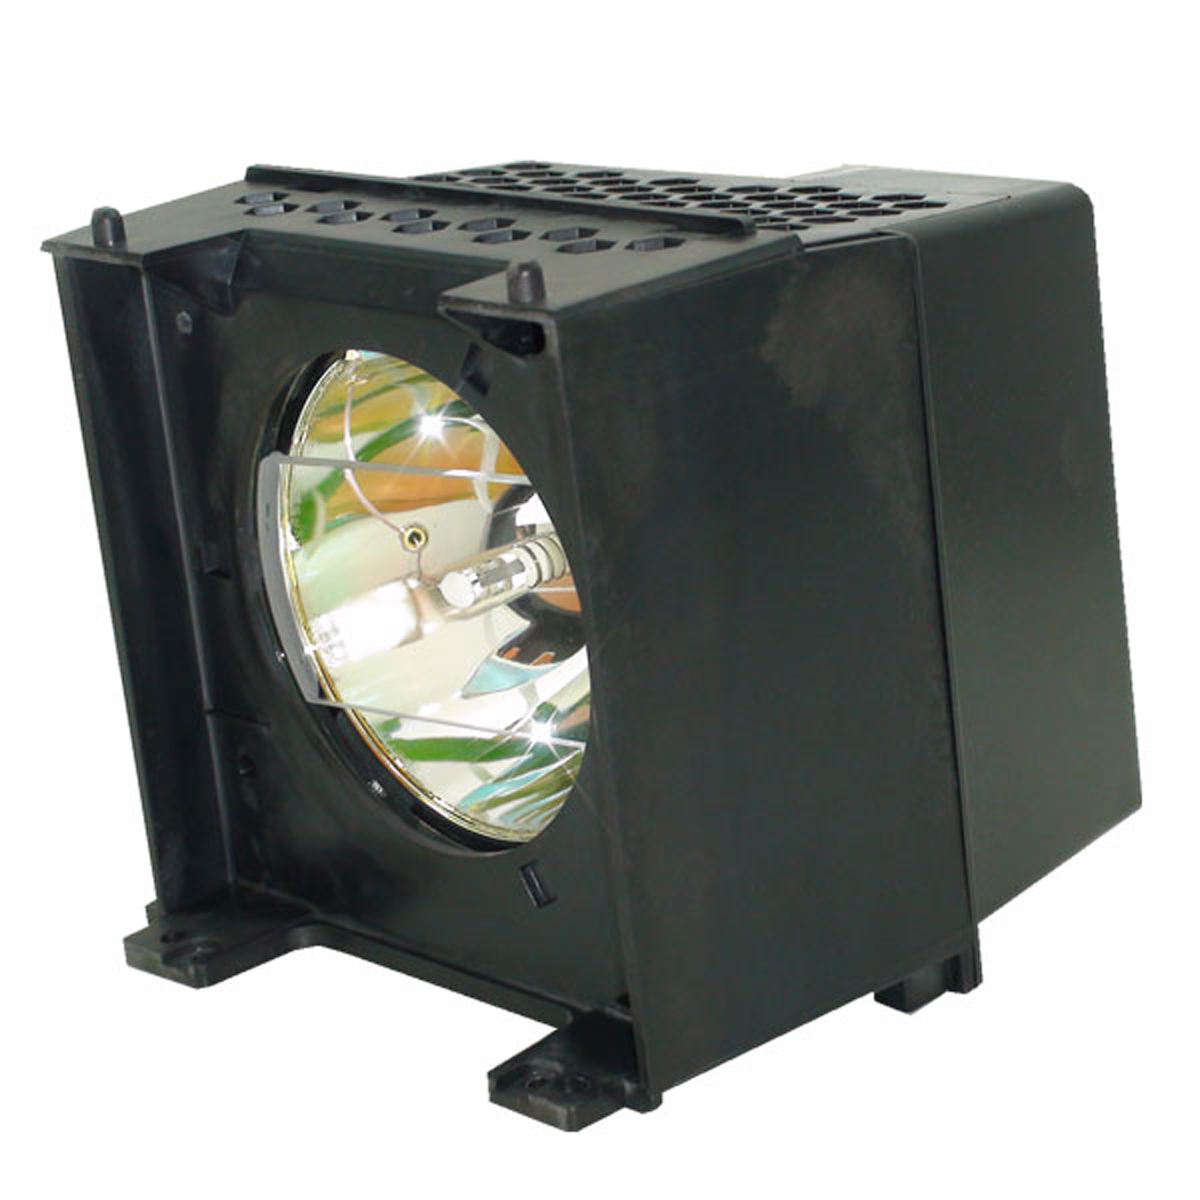 lamp housing for toshiba 50hm66 projection tv bulb dlp walmart com Toshiba 56 DLP HDTV lamp housing for toshiba 50hm66 projection tv bulb dlp